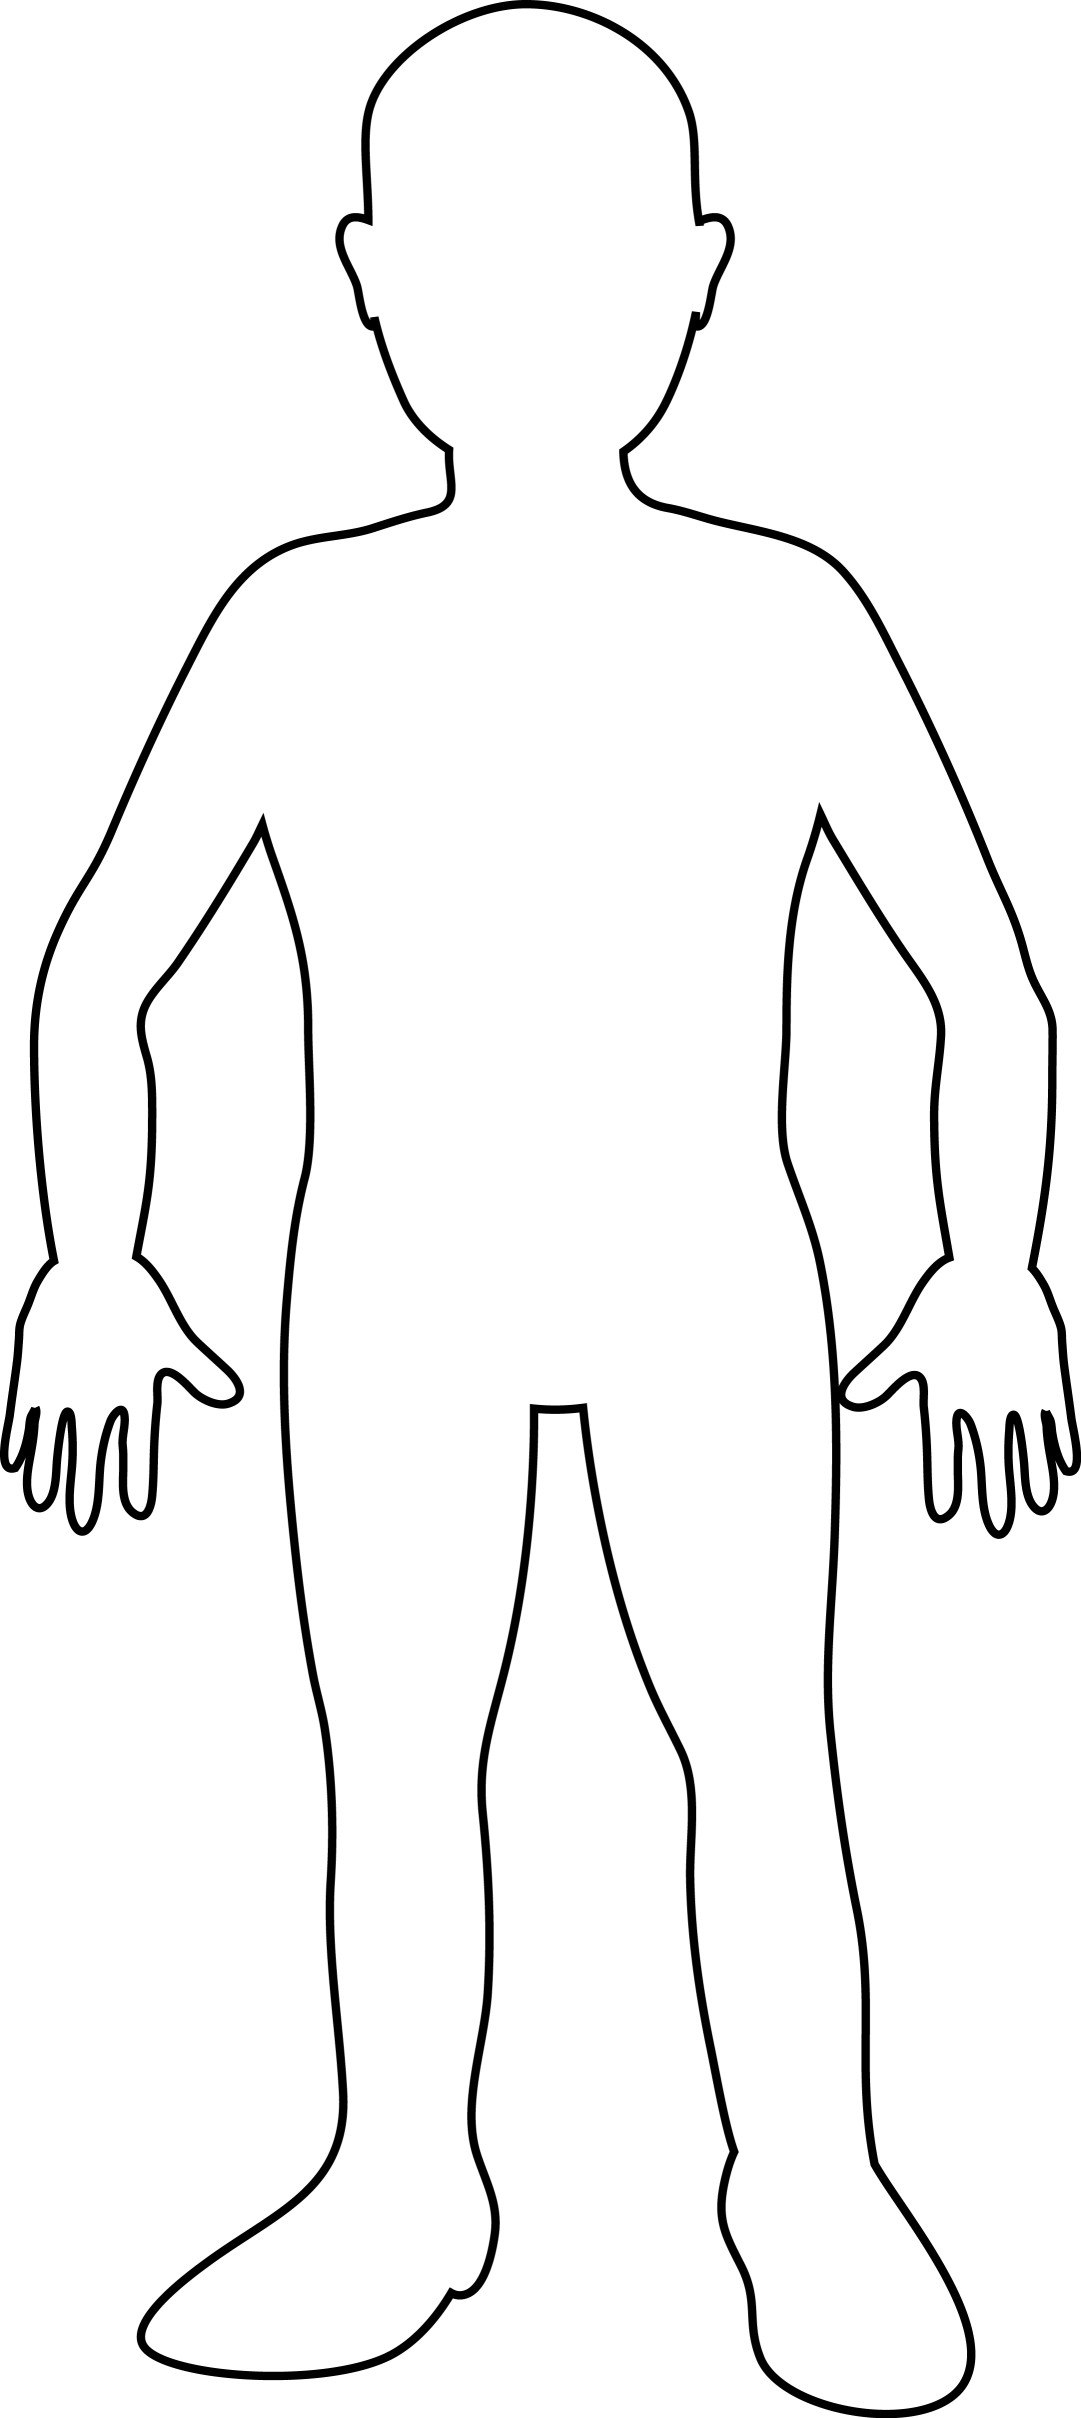 Free Blank Person Outline Download Free Clip Art Free Clip Art On Inside Blank Body Map Template